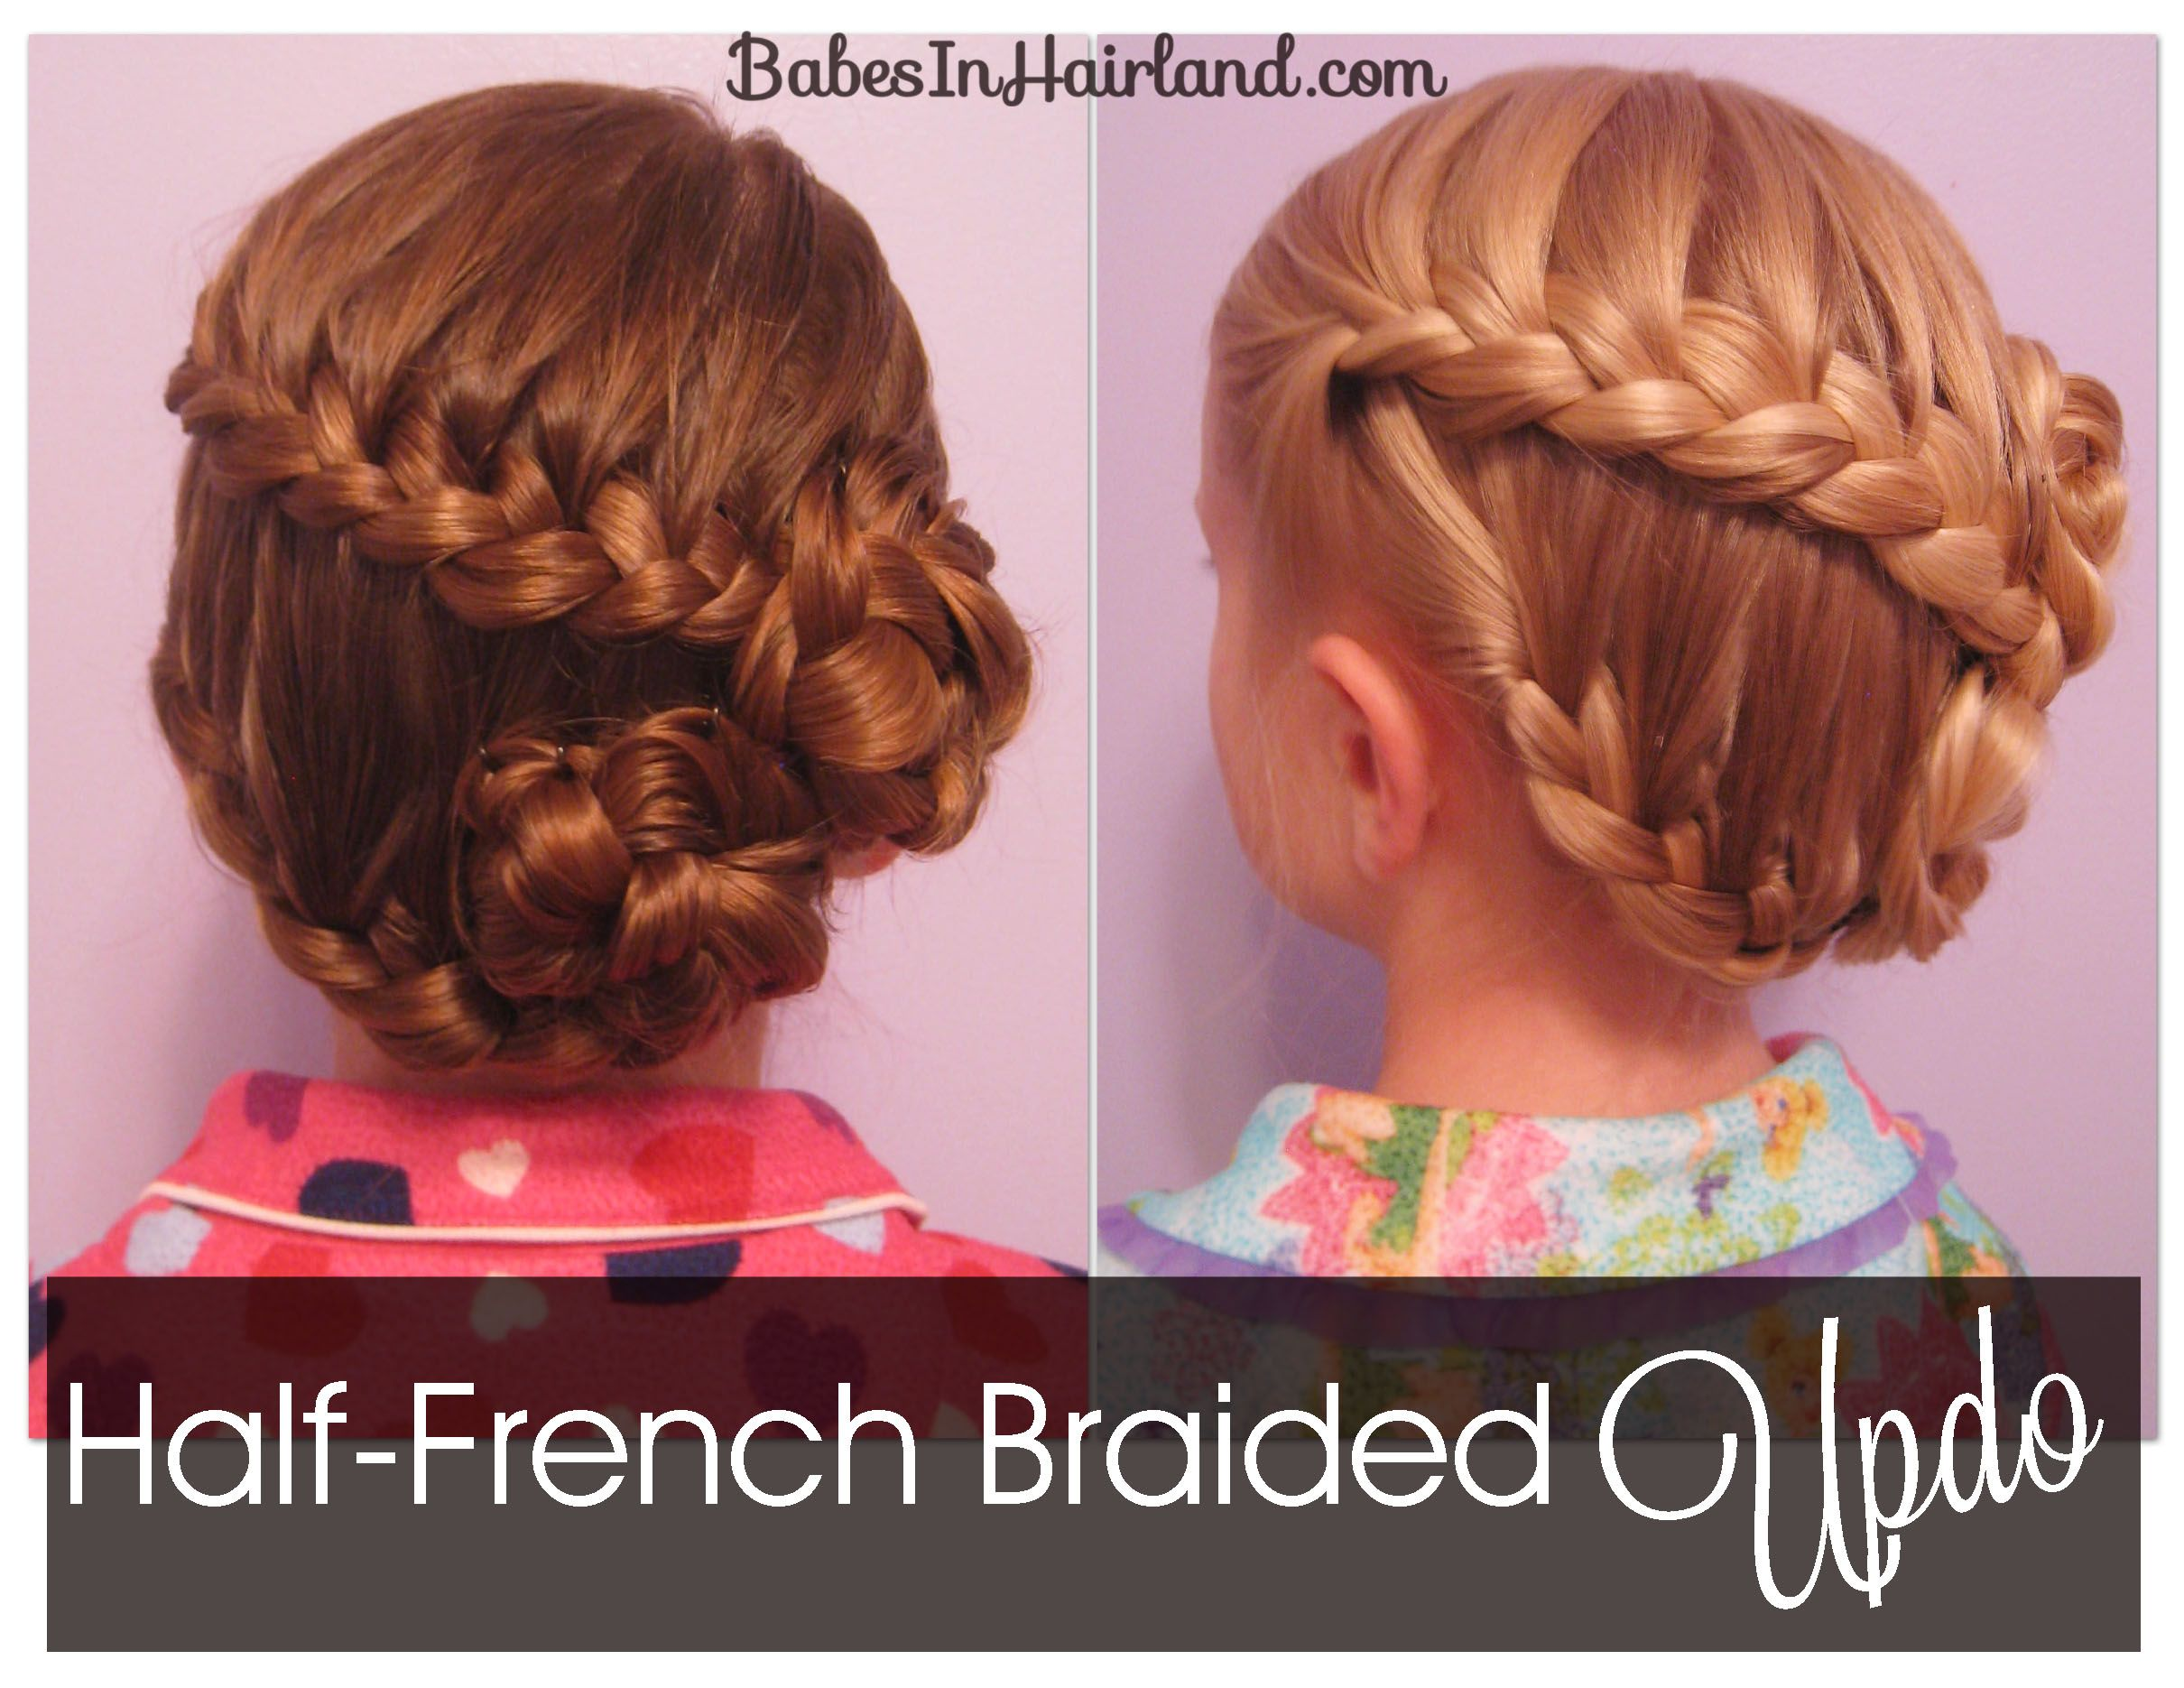 Halffrench braided updo great for shorter or longer hair cute